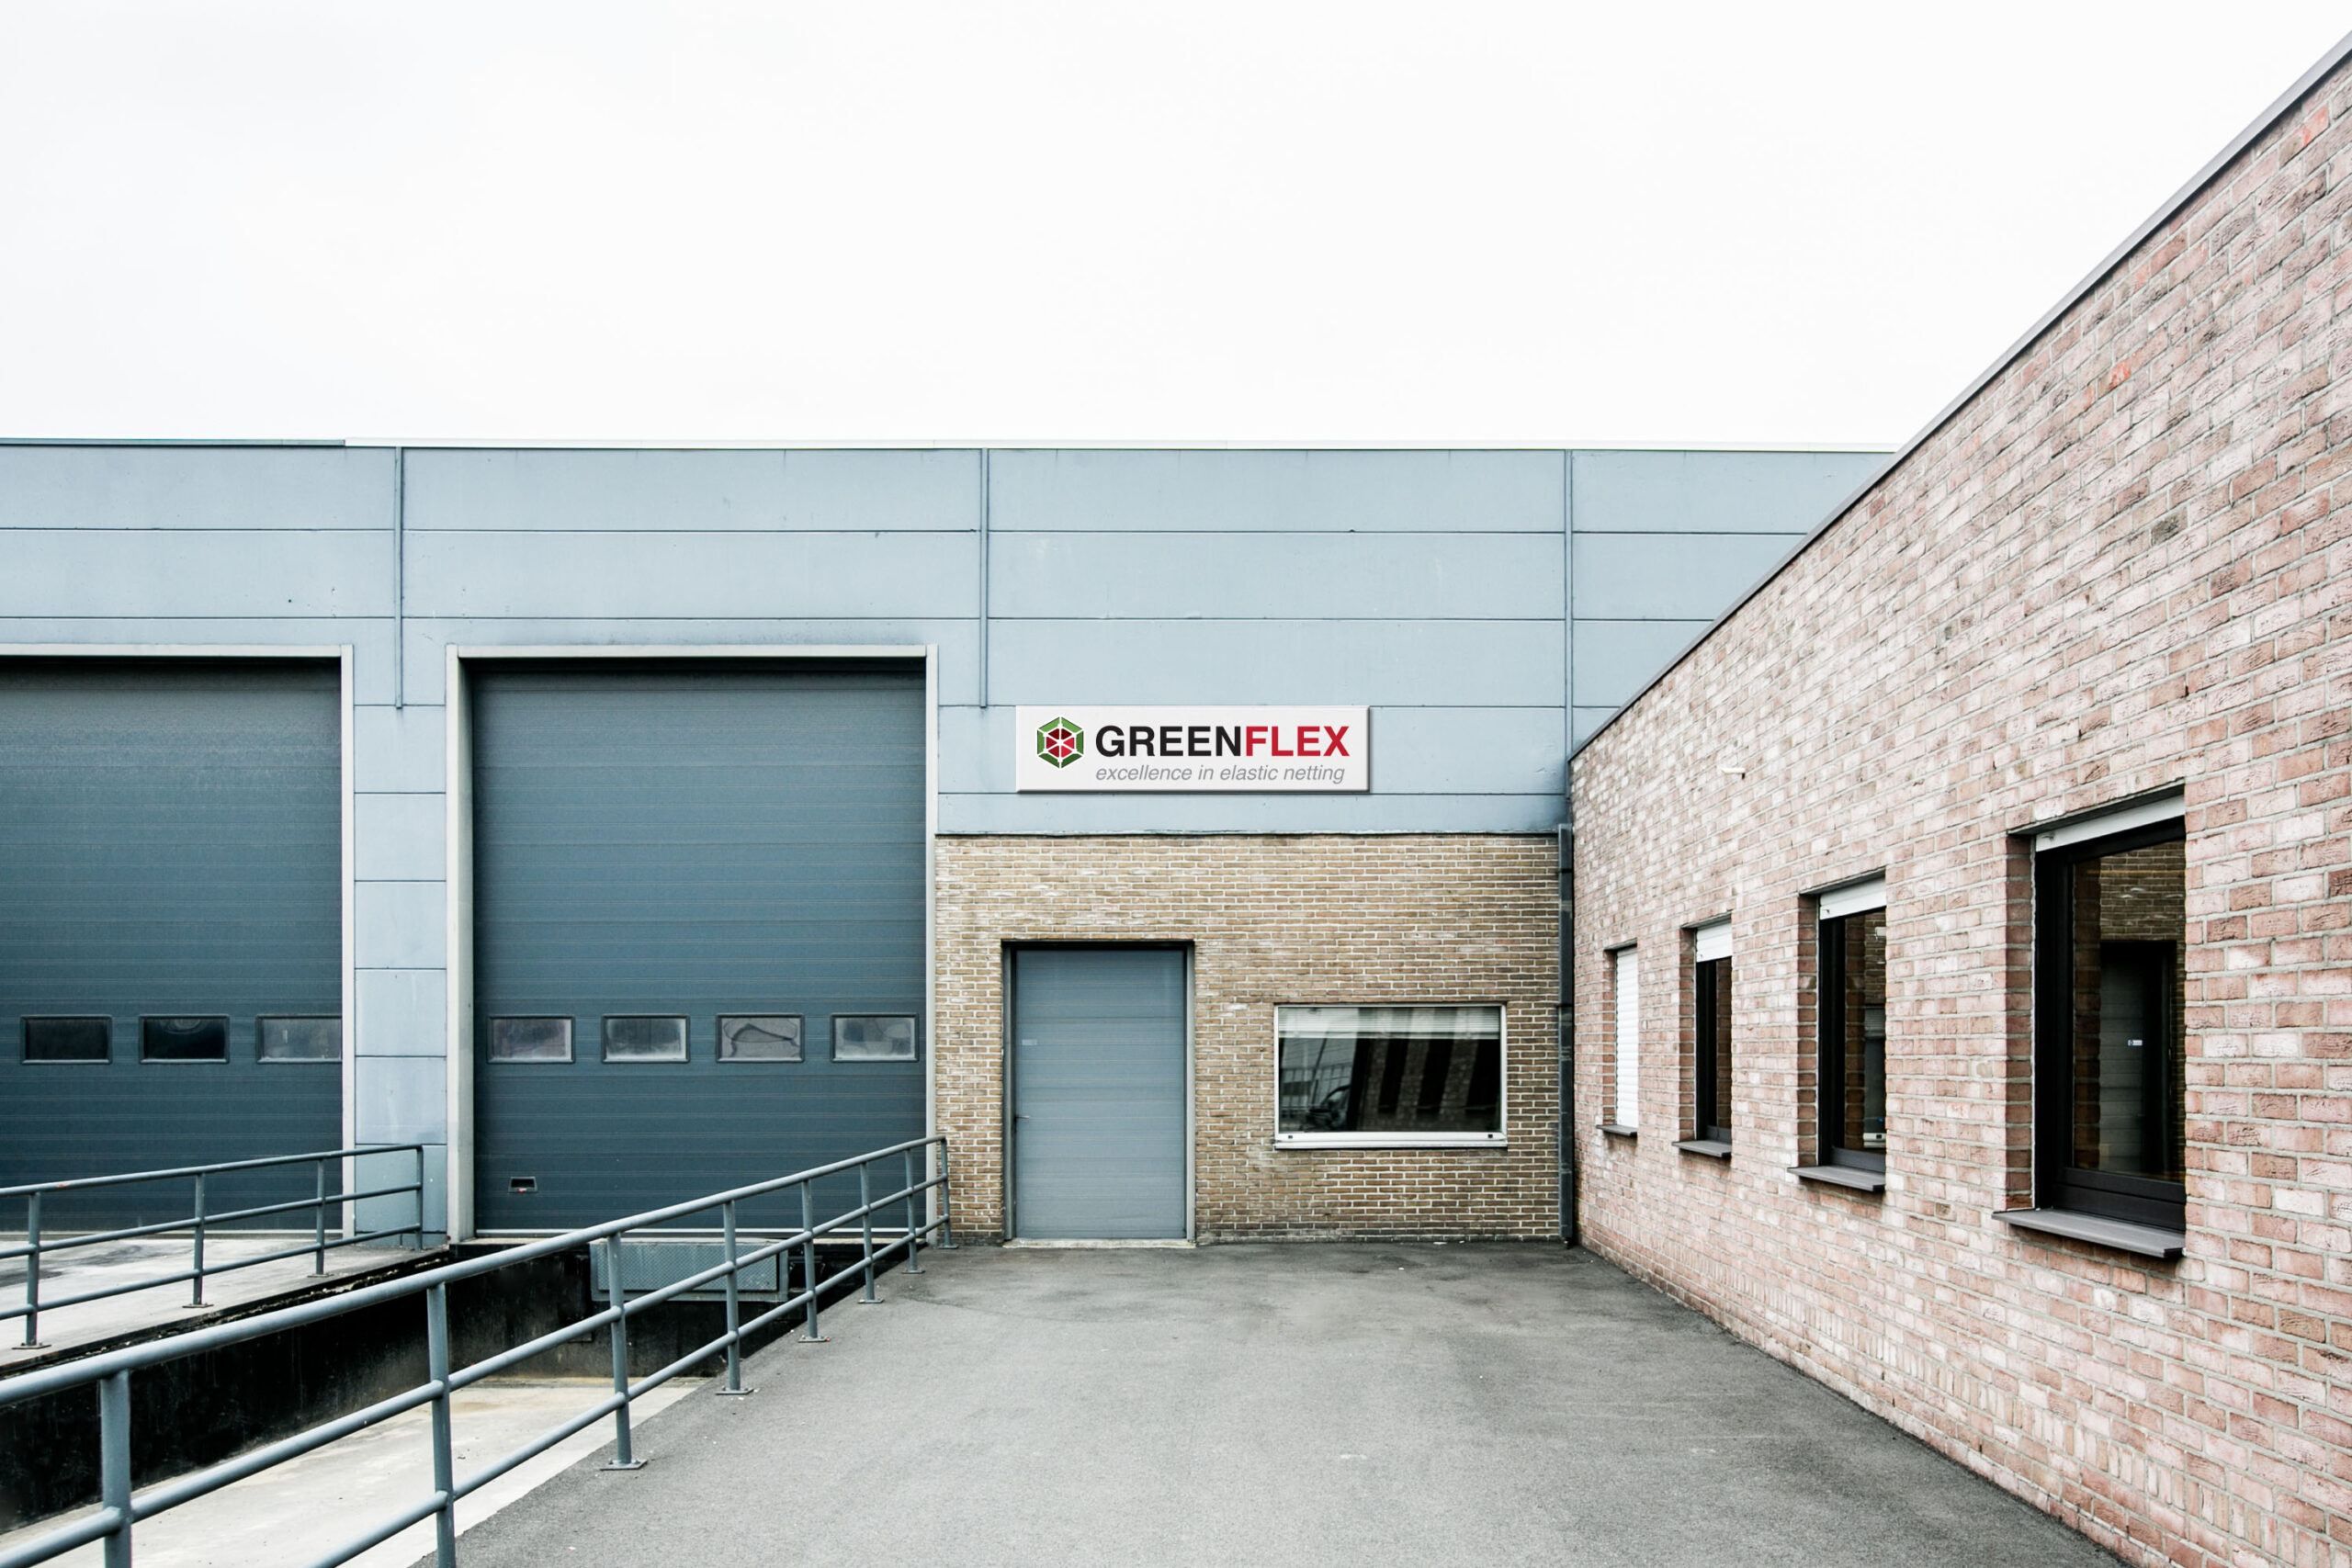 Eke warehouse: manufacturer and provider of textile food packaging